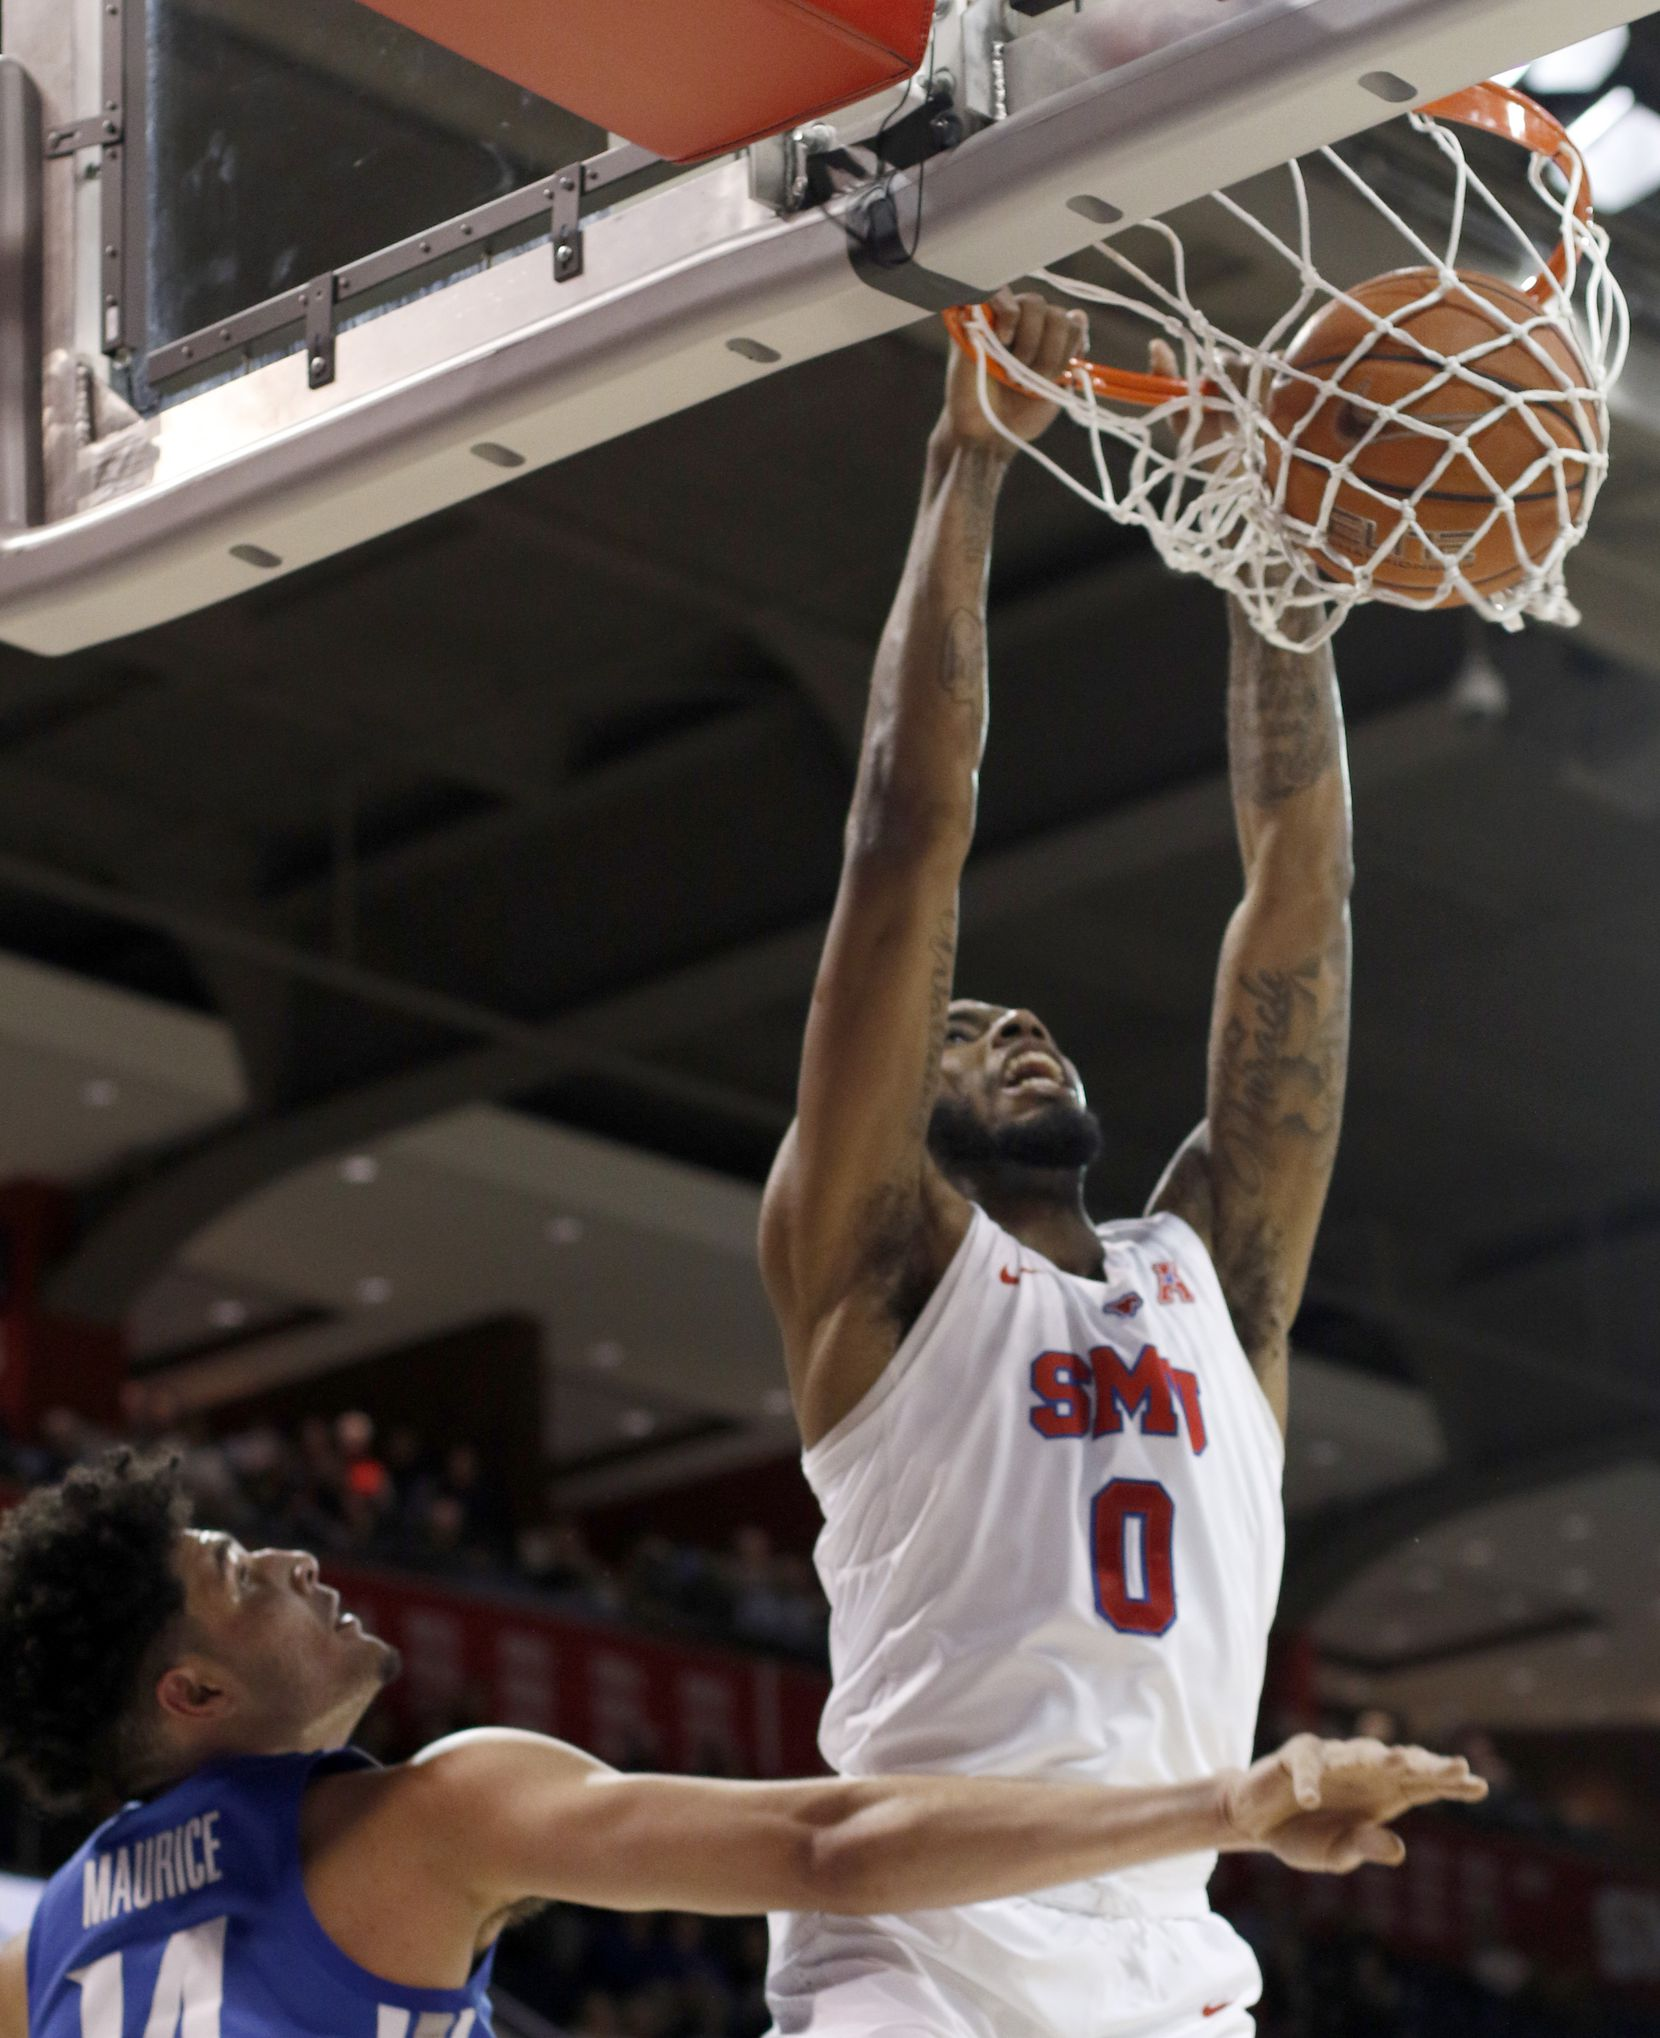 SMU guard Tyson Jolly (0) dunks over the defense of Memphis forward Isaiah Maurice (14) during first half action. The two teams from the NCAA's American Athletic Conference played their men's basketball game at SMU's Moody Coliseum in Dallas on February 25, 2020.